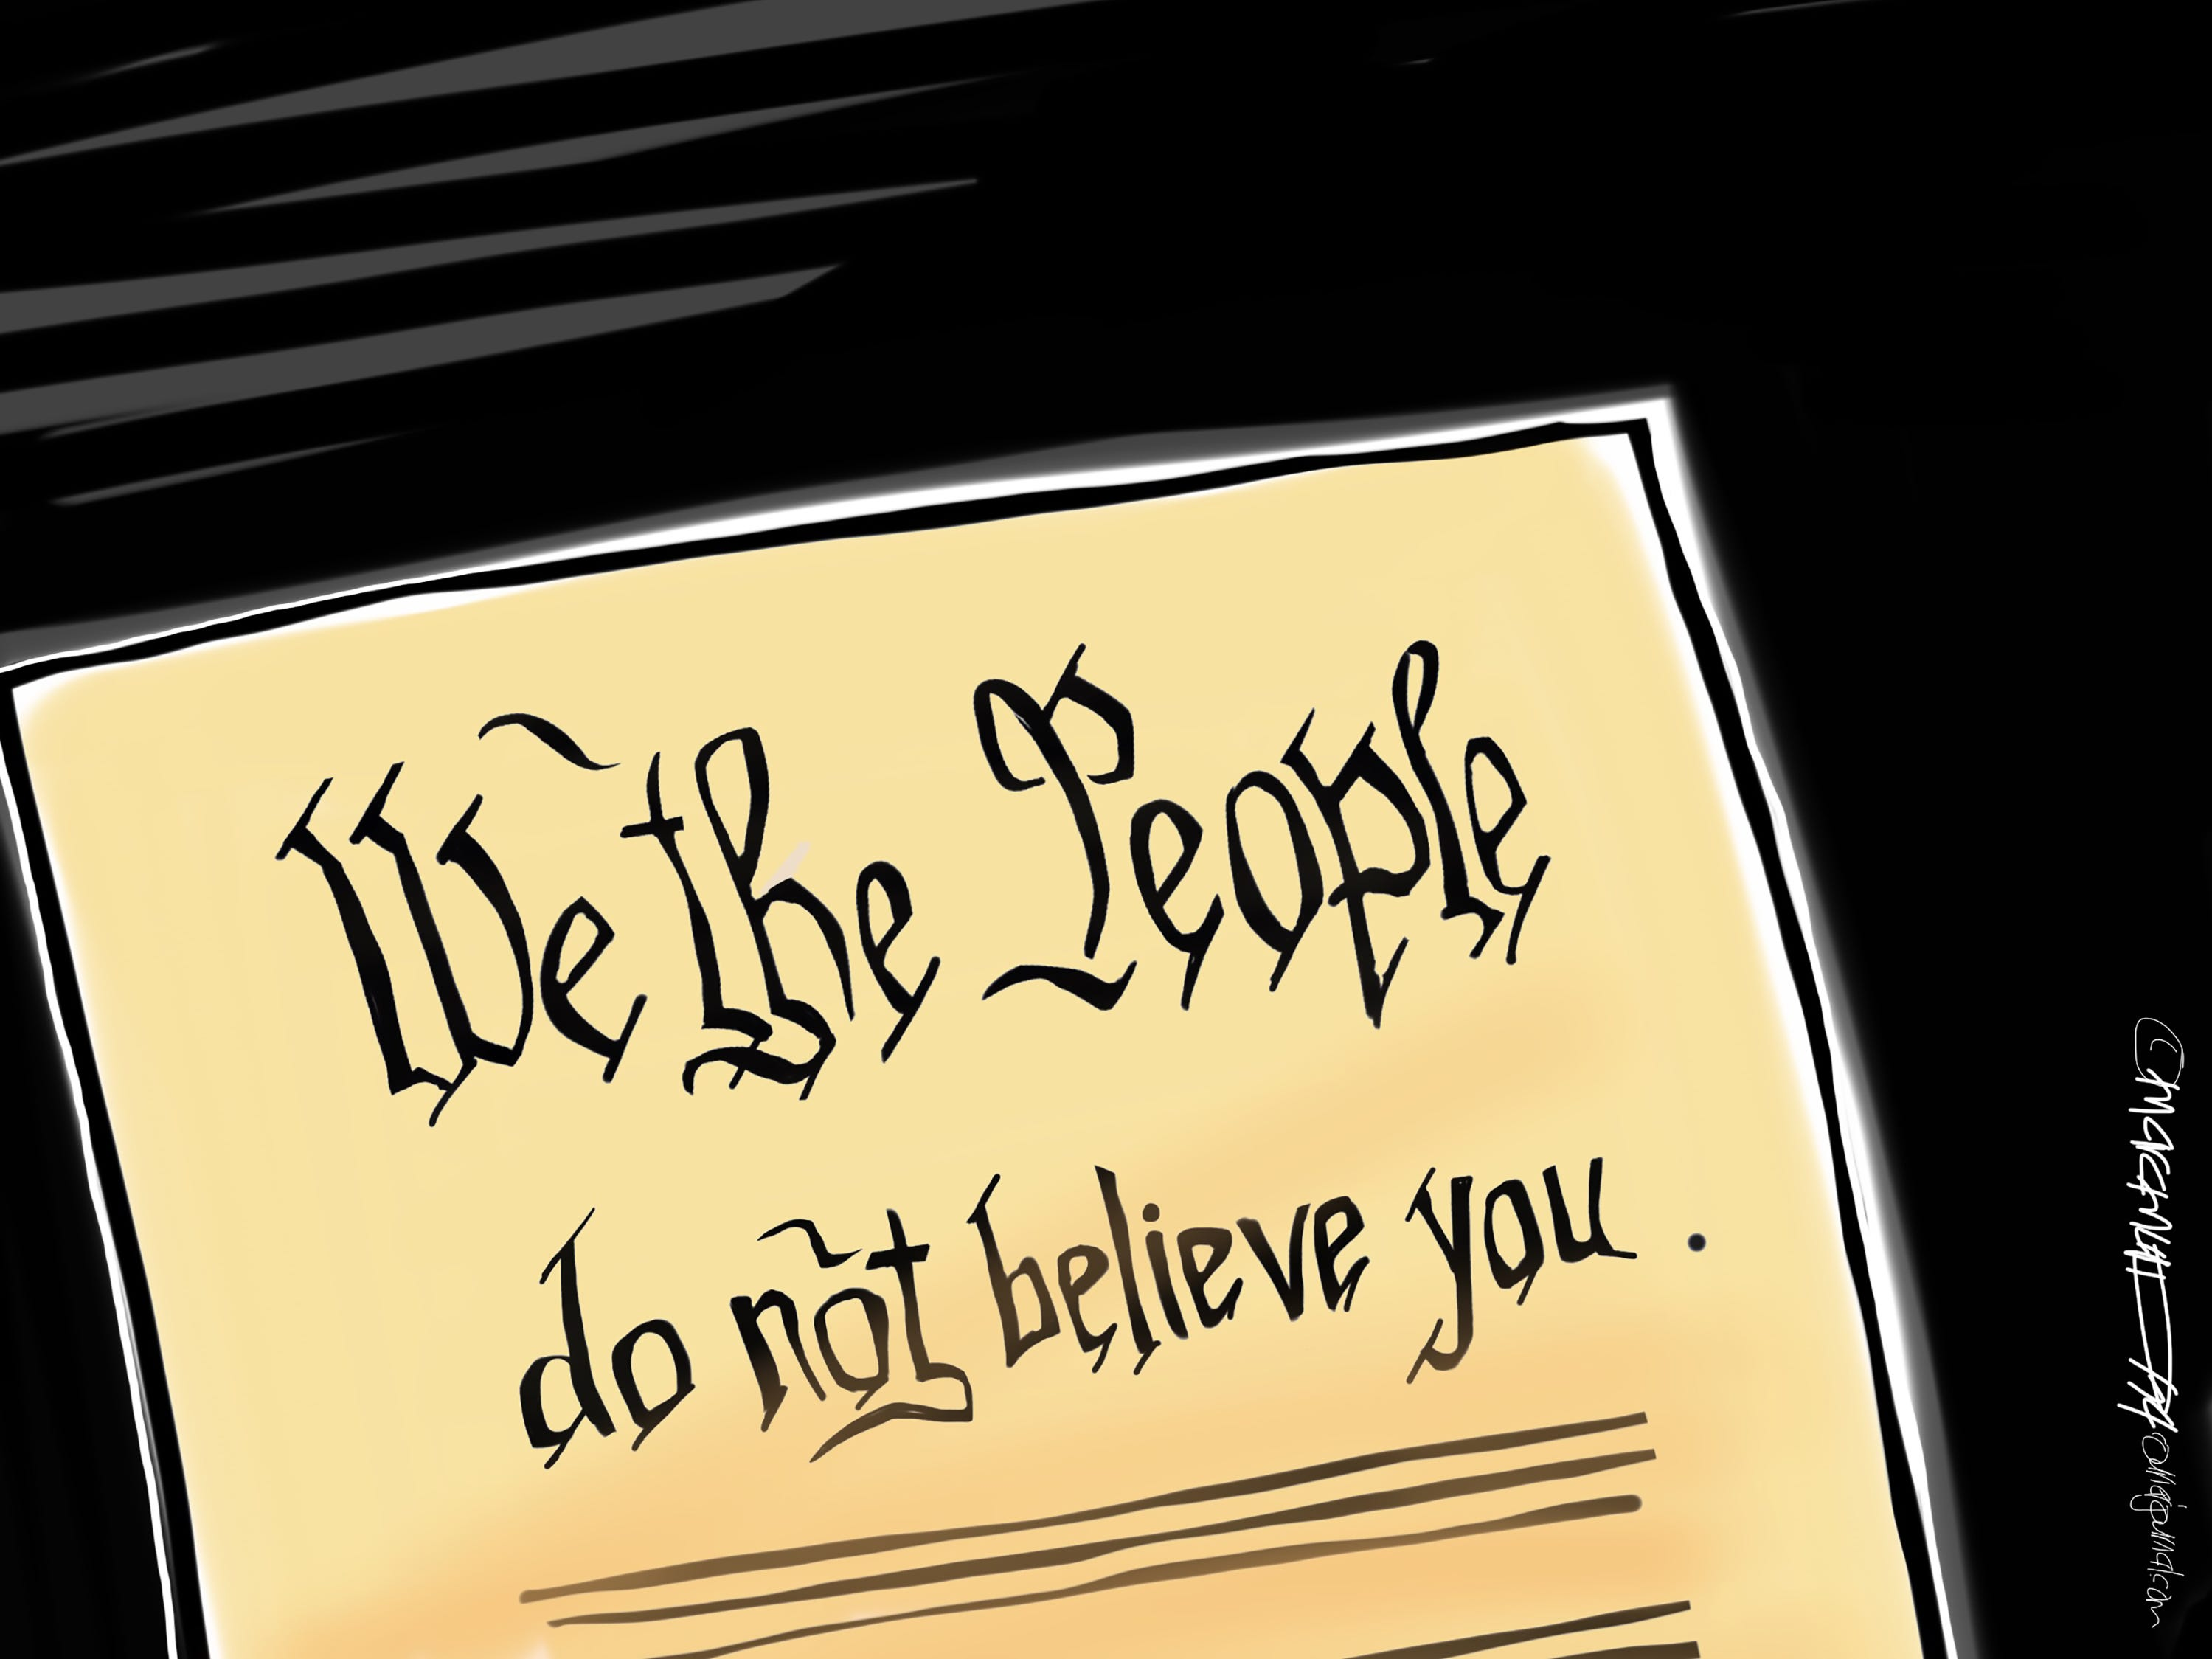 The cartoonist's homepage, courier-journal.com/opinion